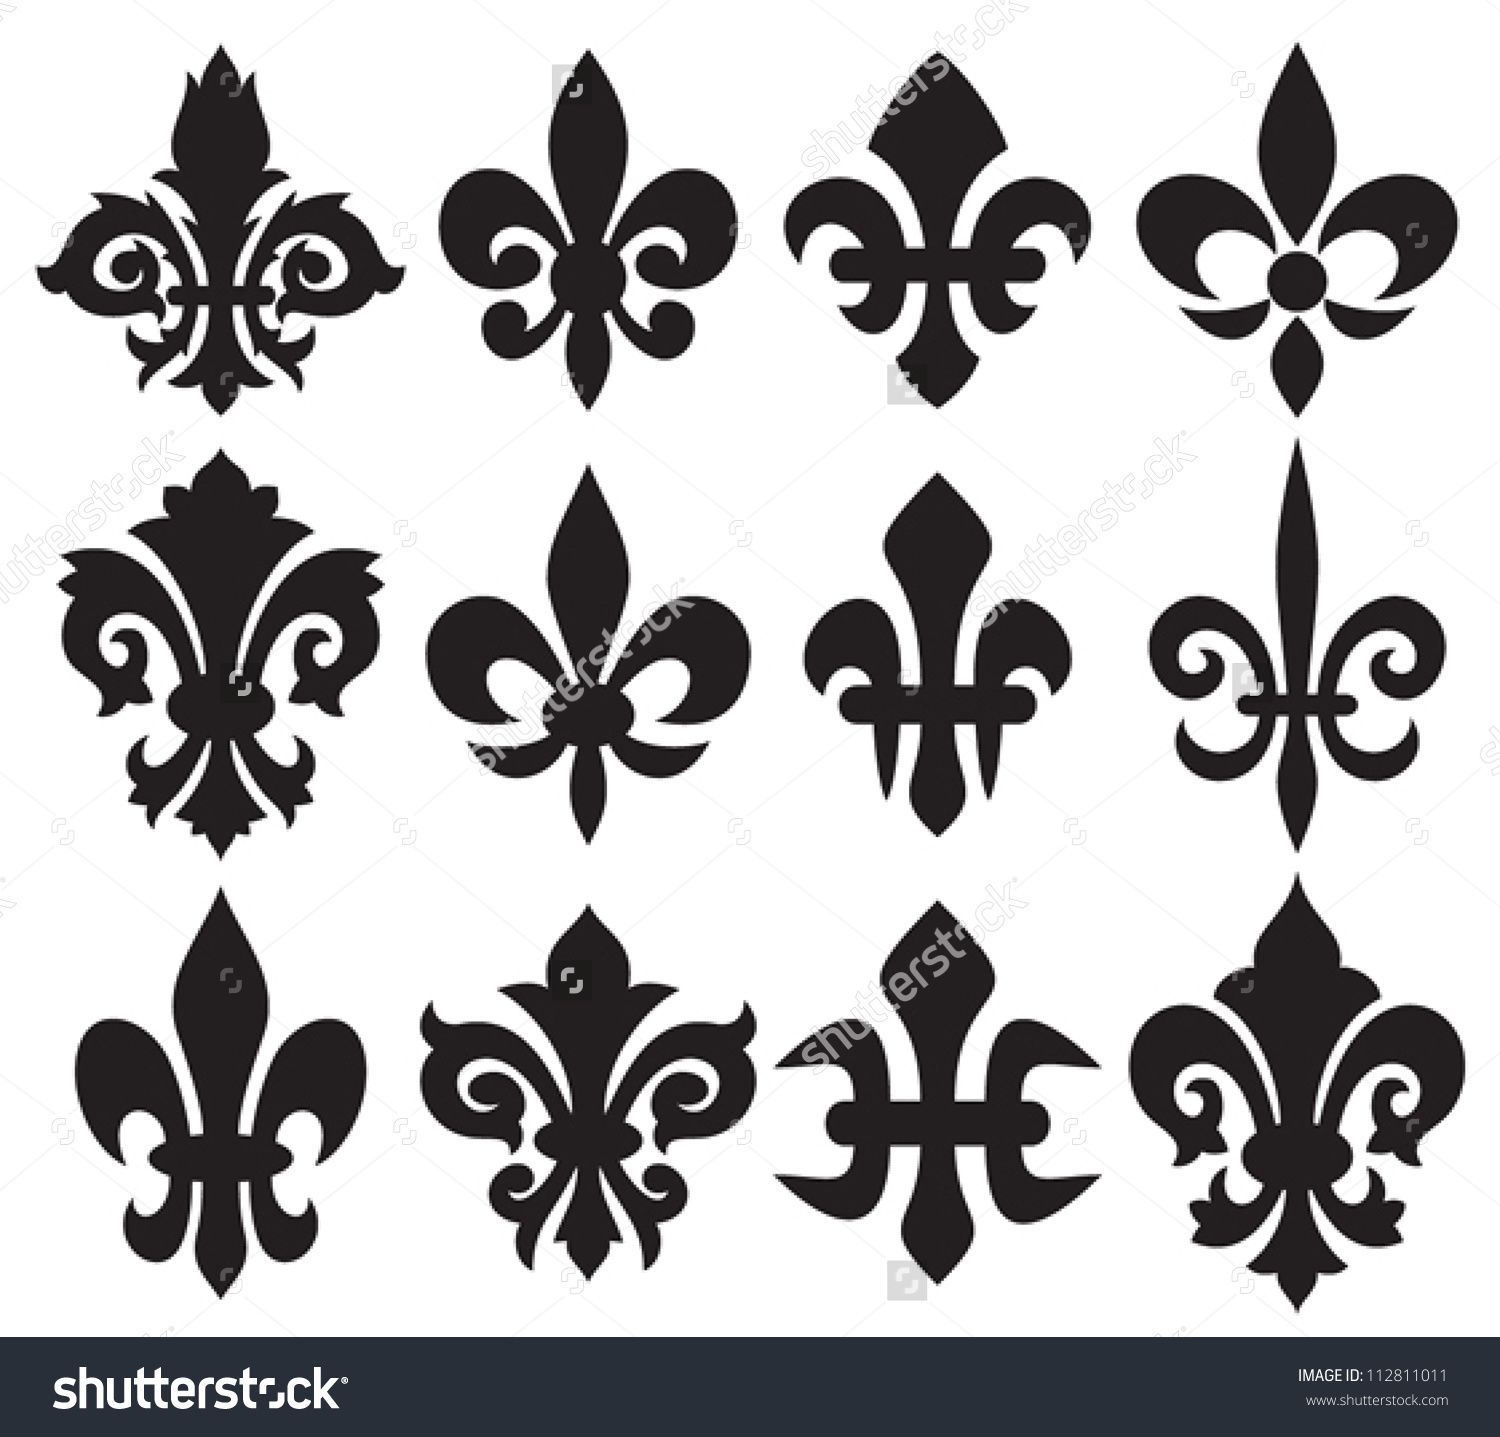 french symbols Google Search Symbols Pinterest